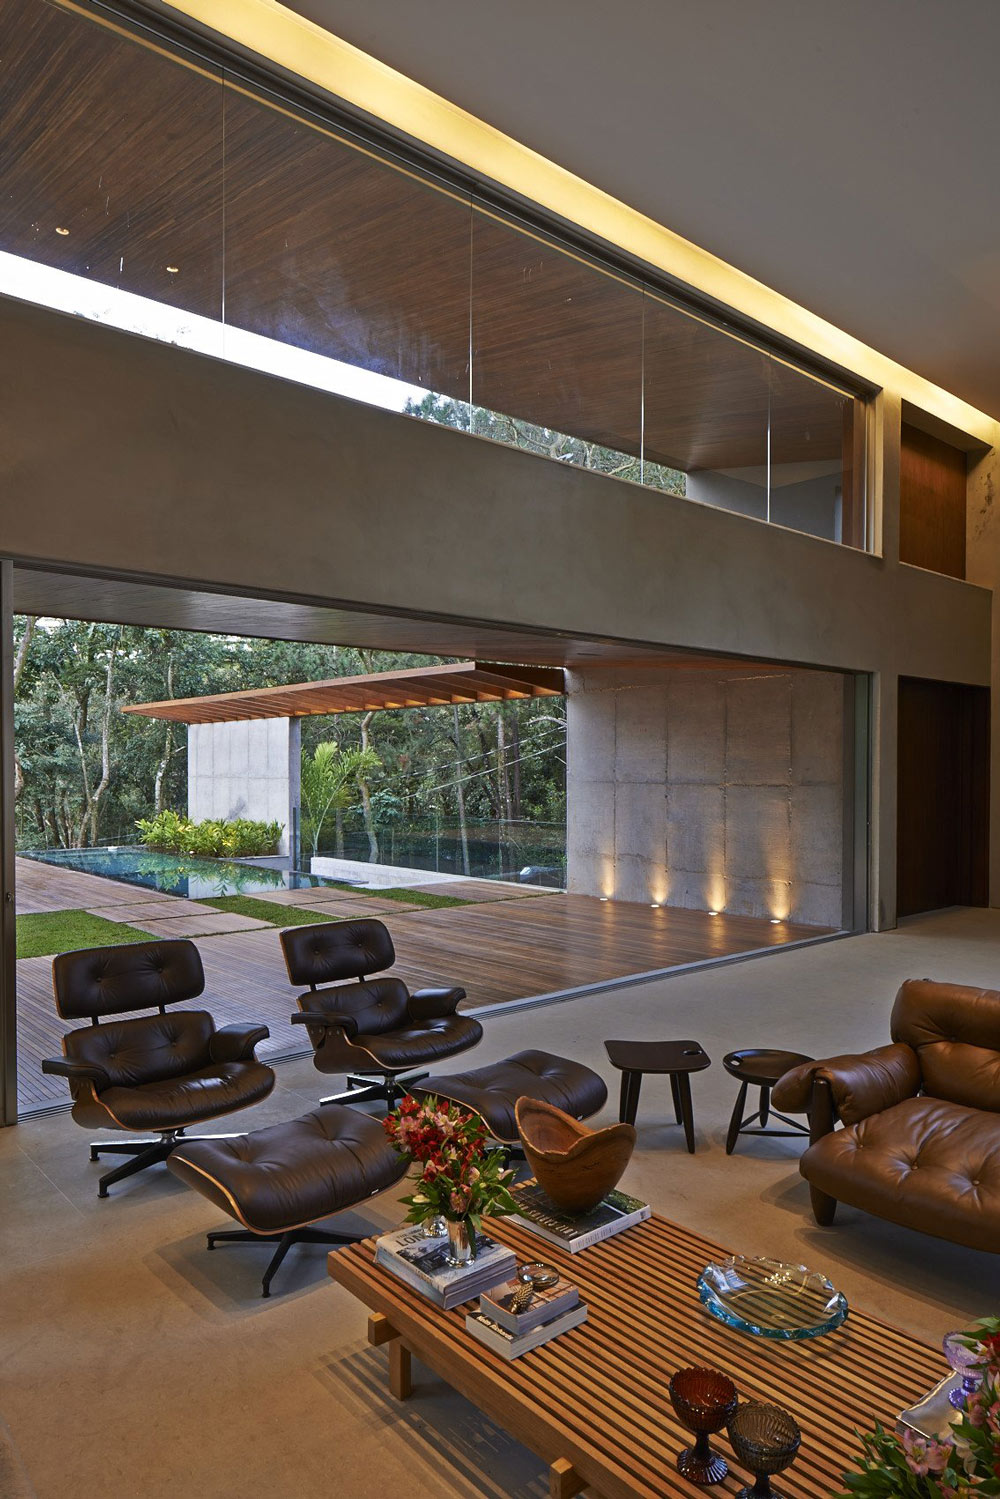 Coffee Table, Chairs, Contemporary Home in Nova Lima, Brazil